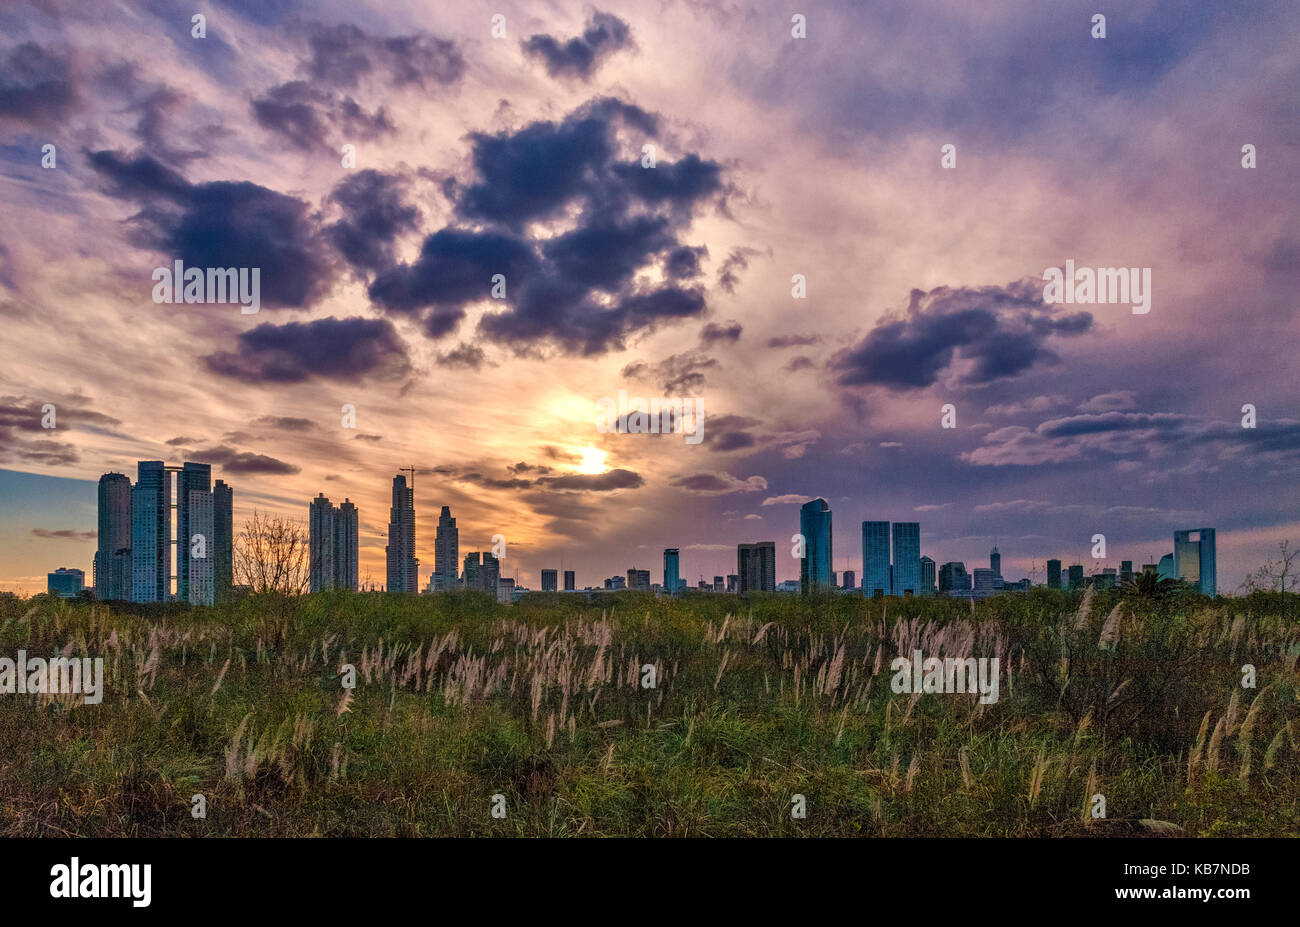 View of the city from the Ecological reservation. Puerto Madero, Buenos Aires, Argentina. - Stock Image